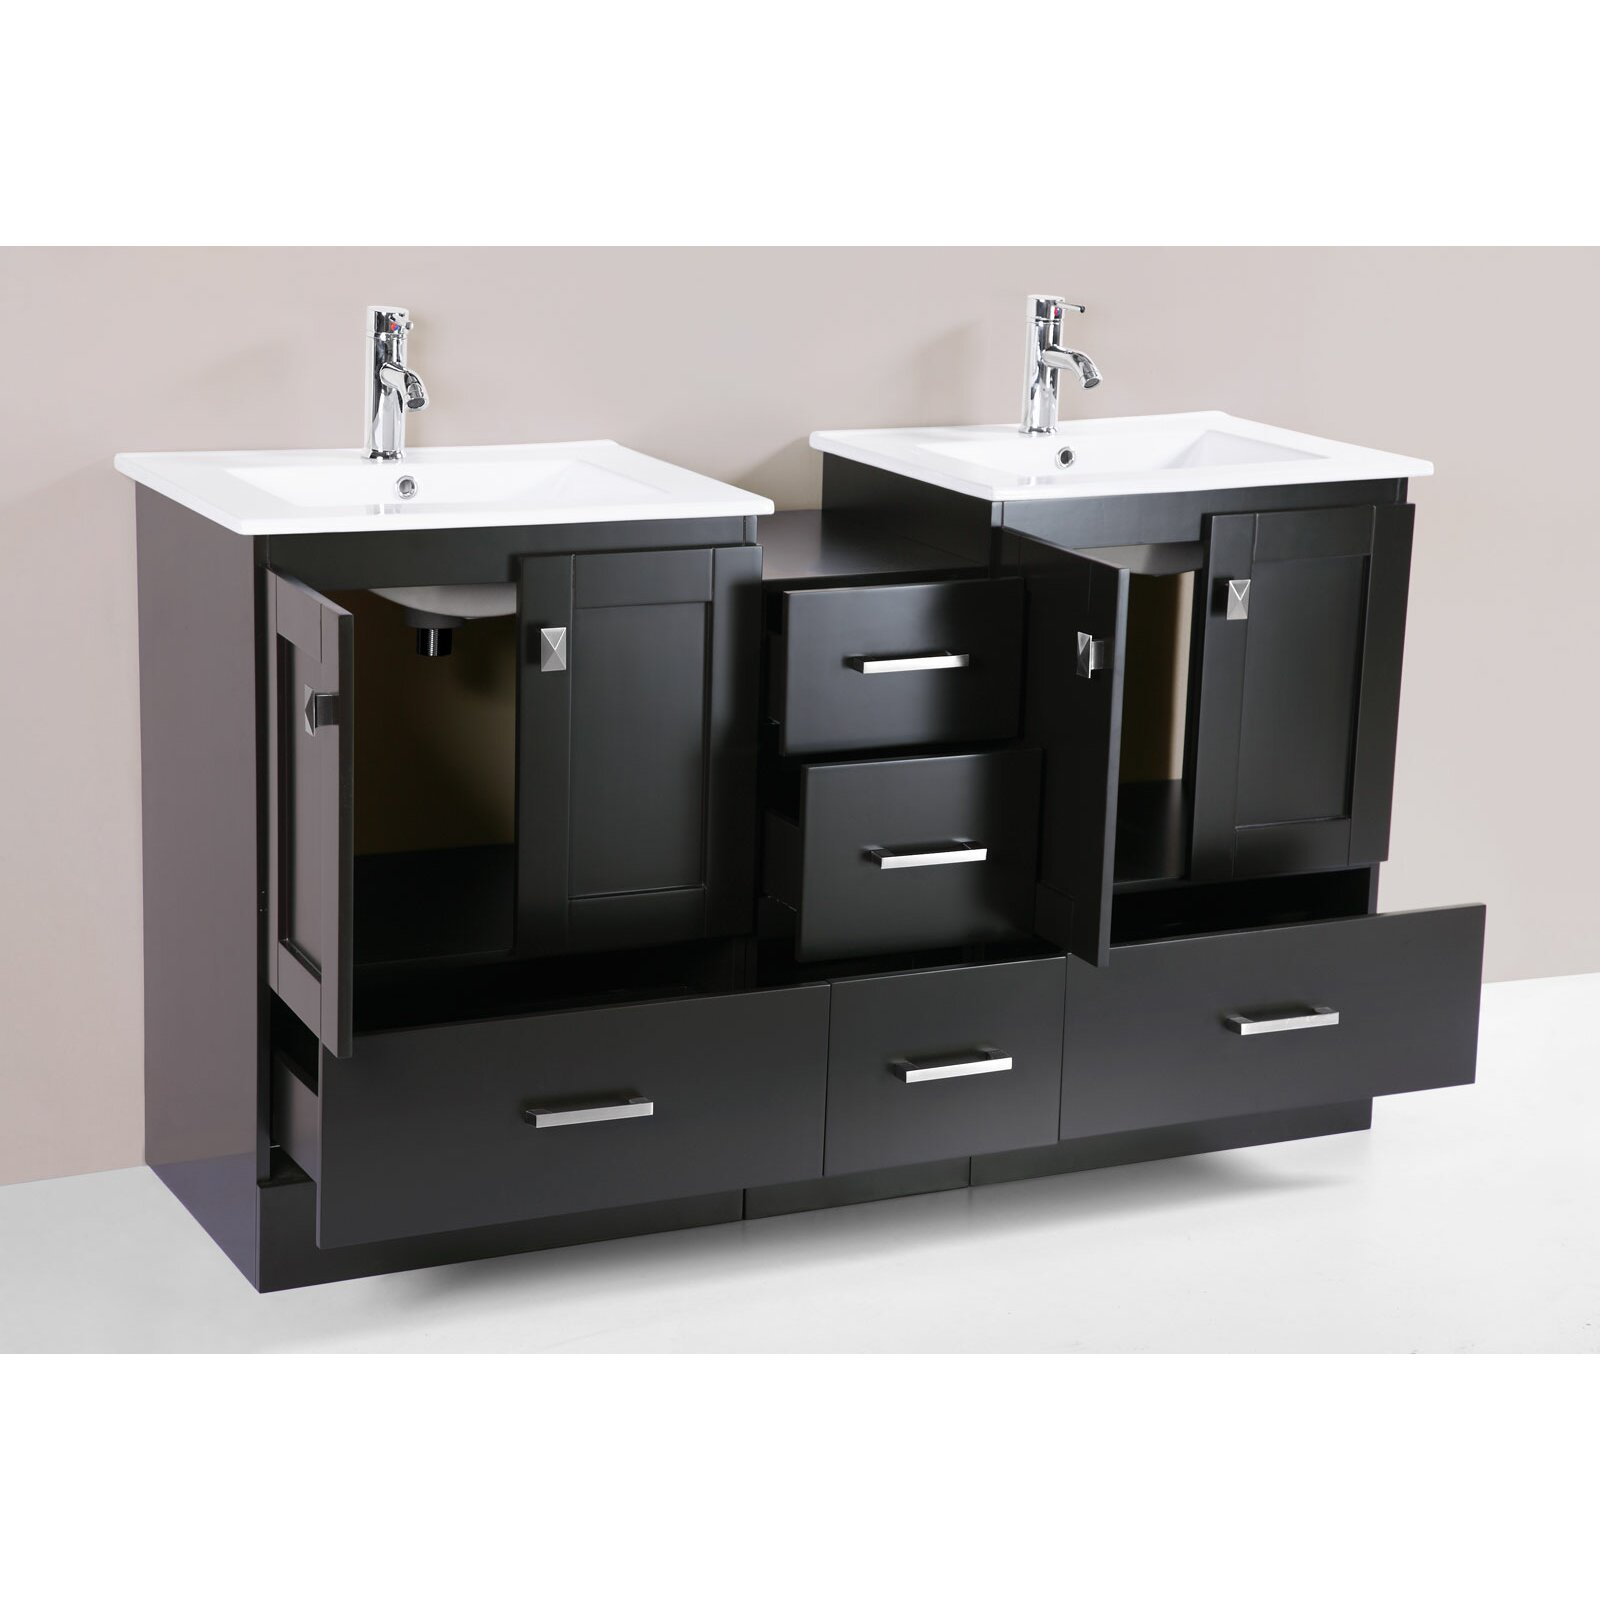 Pacificcollection redondo 60 double modern bathroom side cabinet vanity set with mirror wayfair - Kona modern bathroom vanity set ...